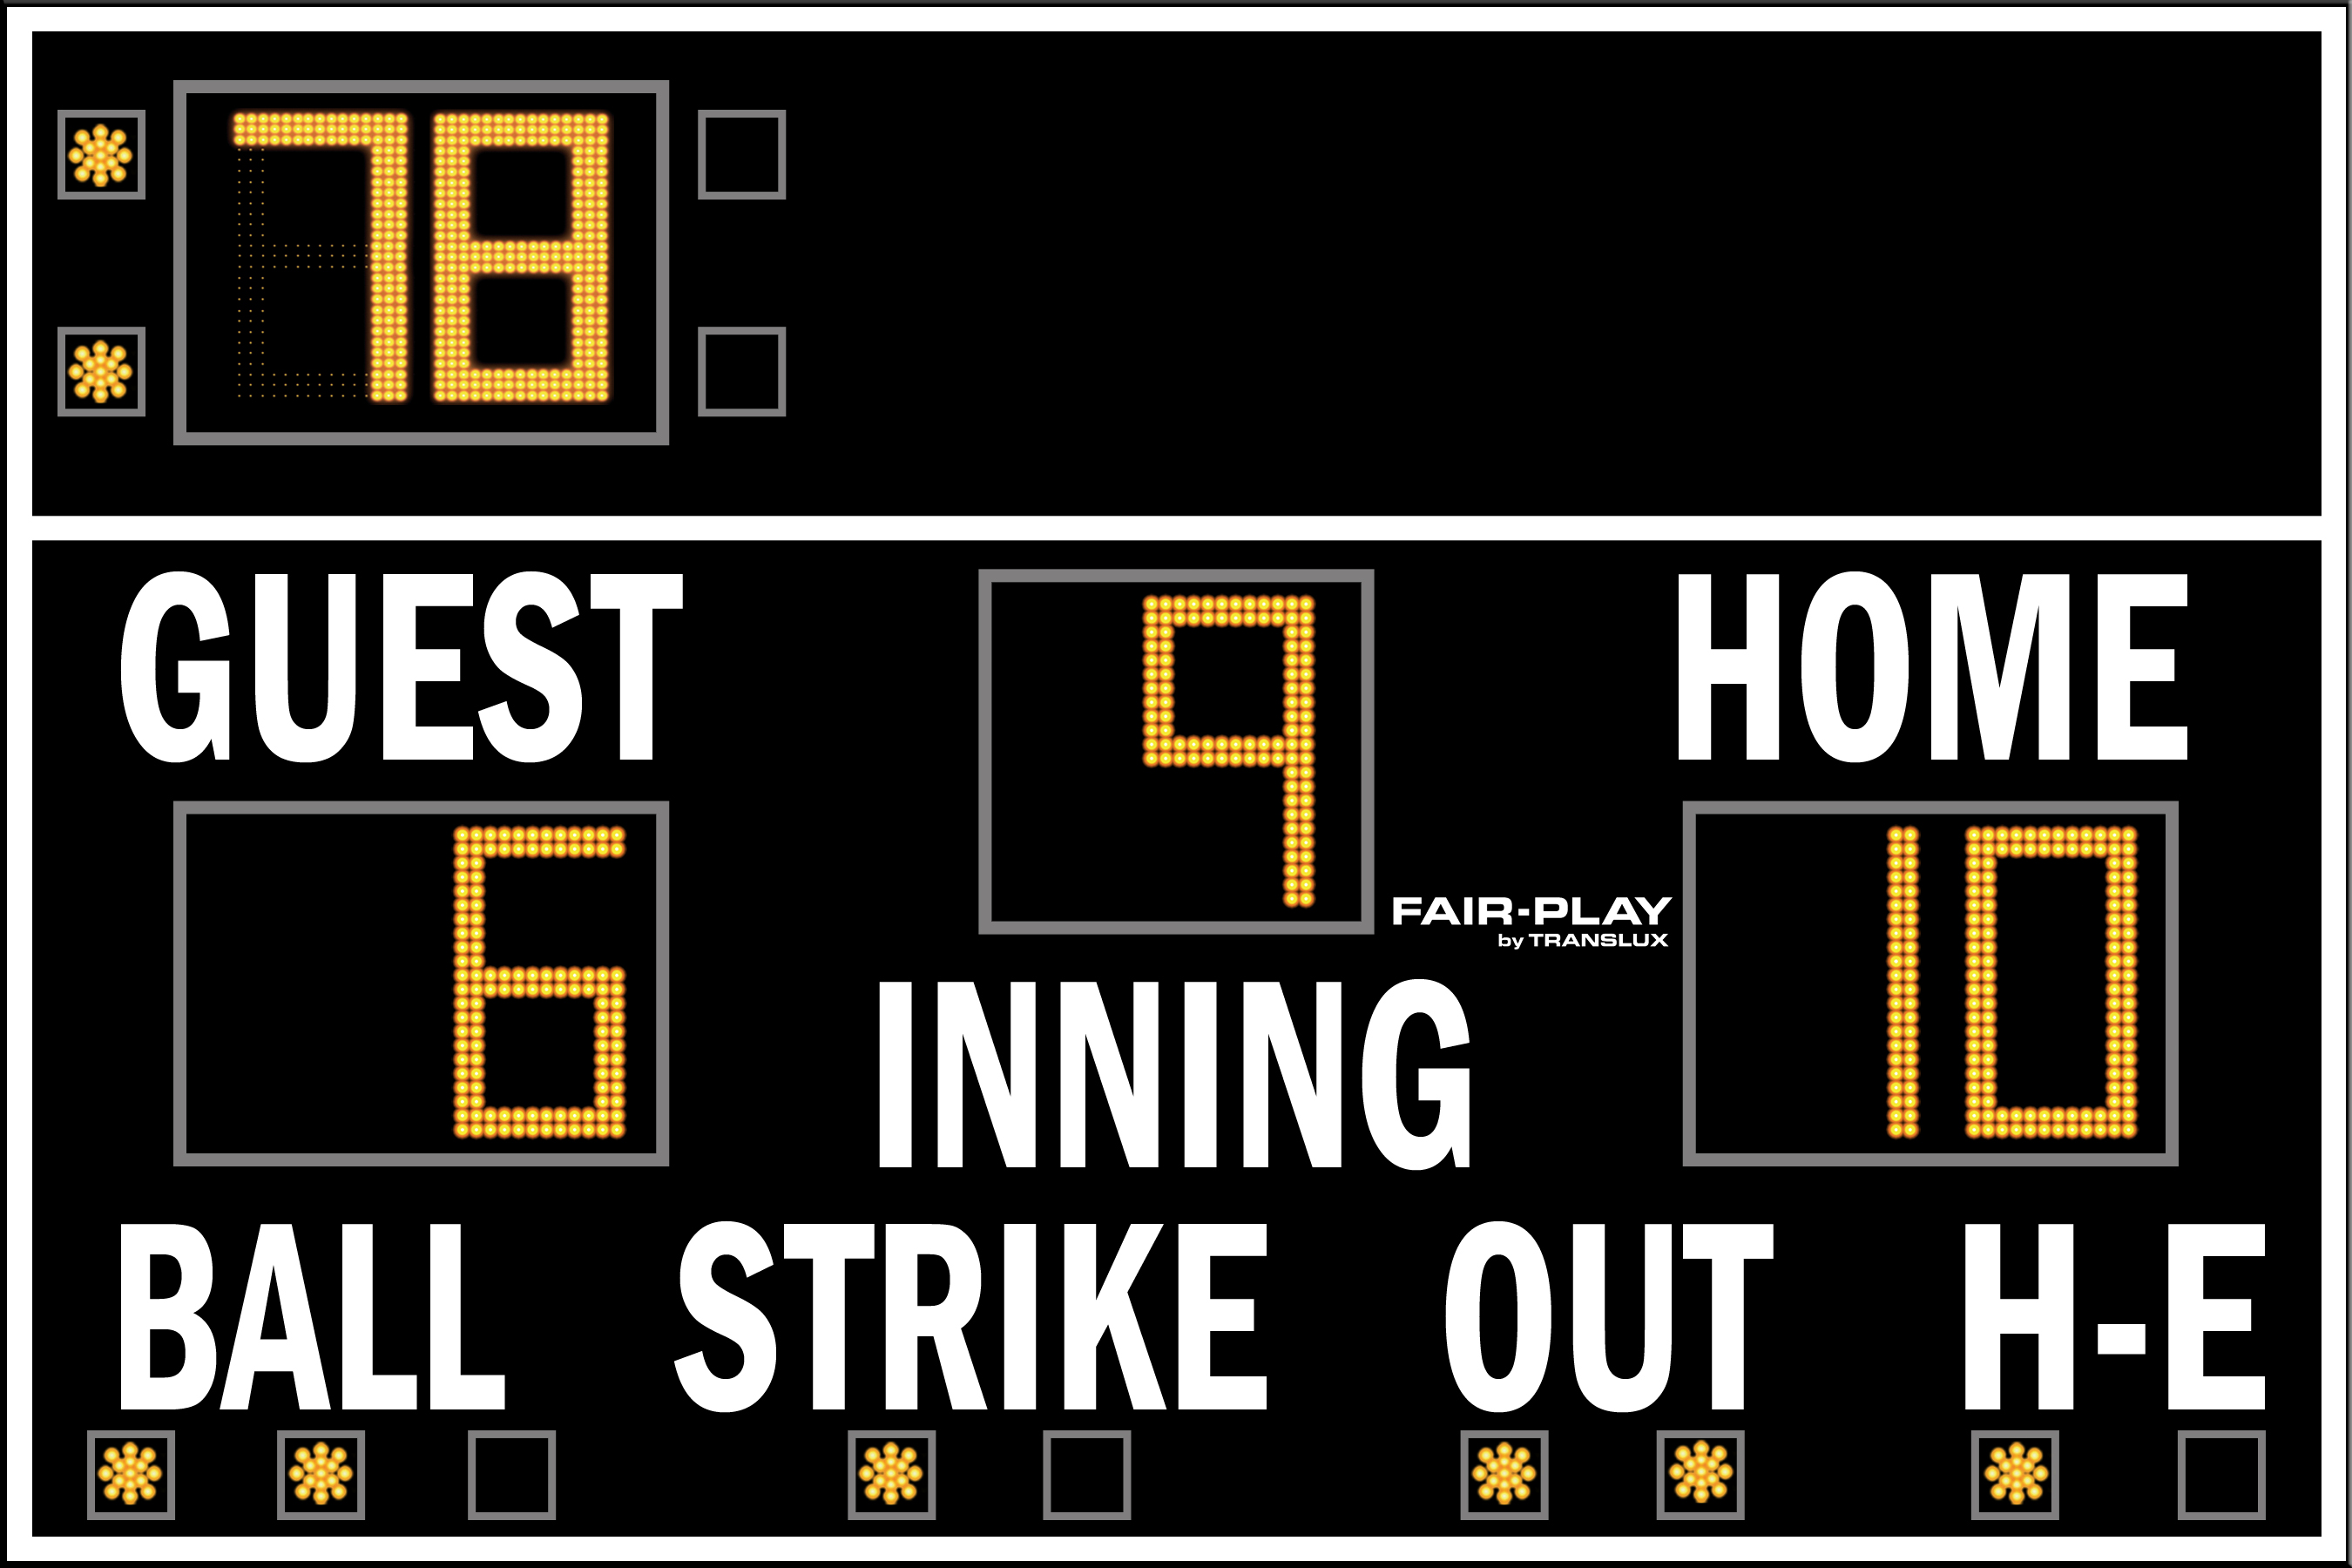 Fair-Play BA-7109T-2 Baseball Scoreboard (6′ x 9′)